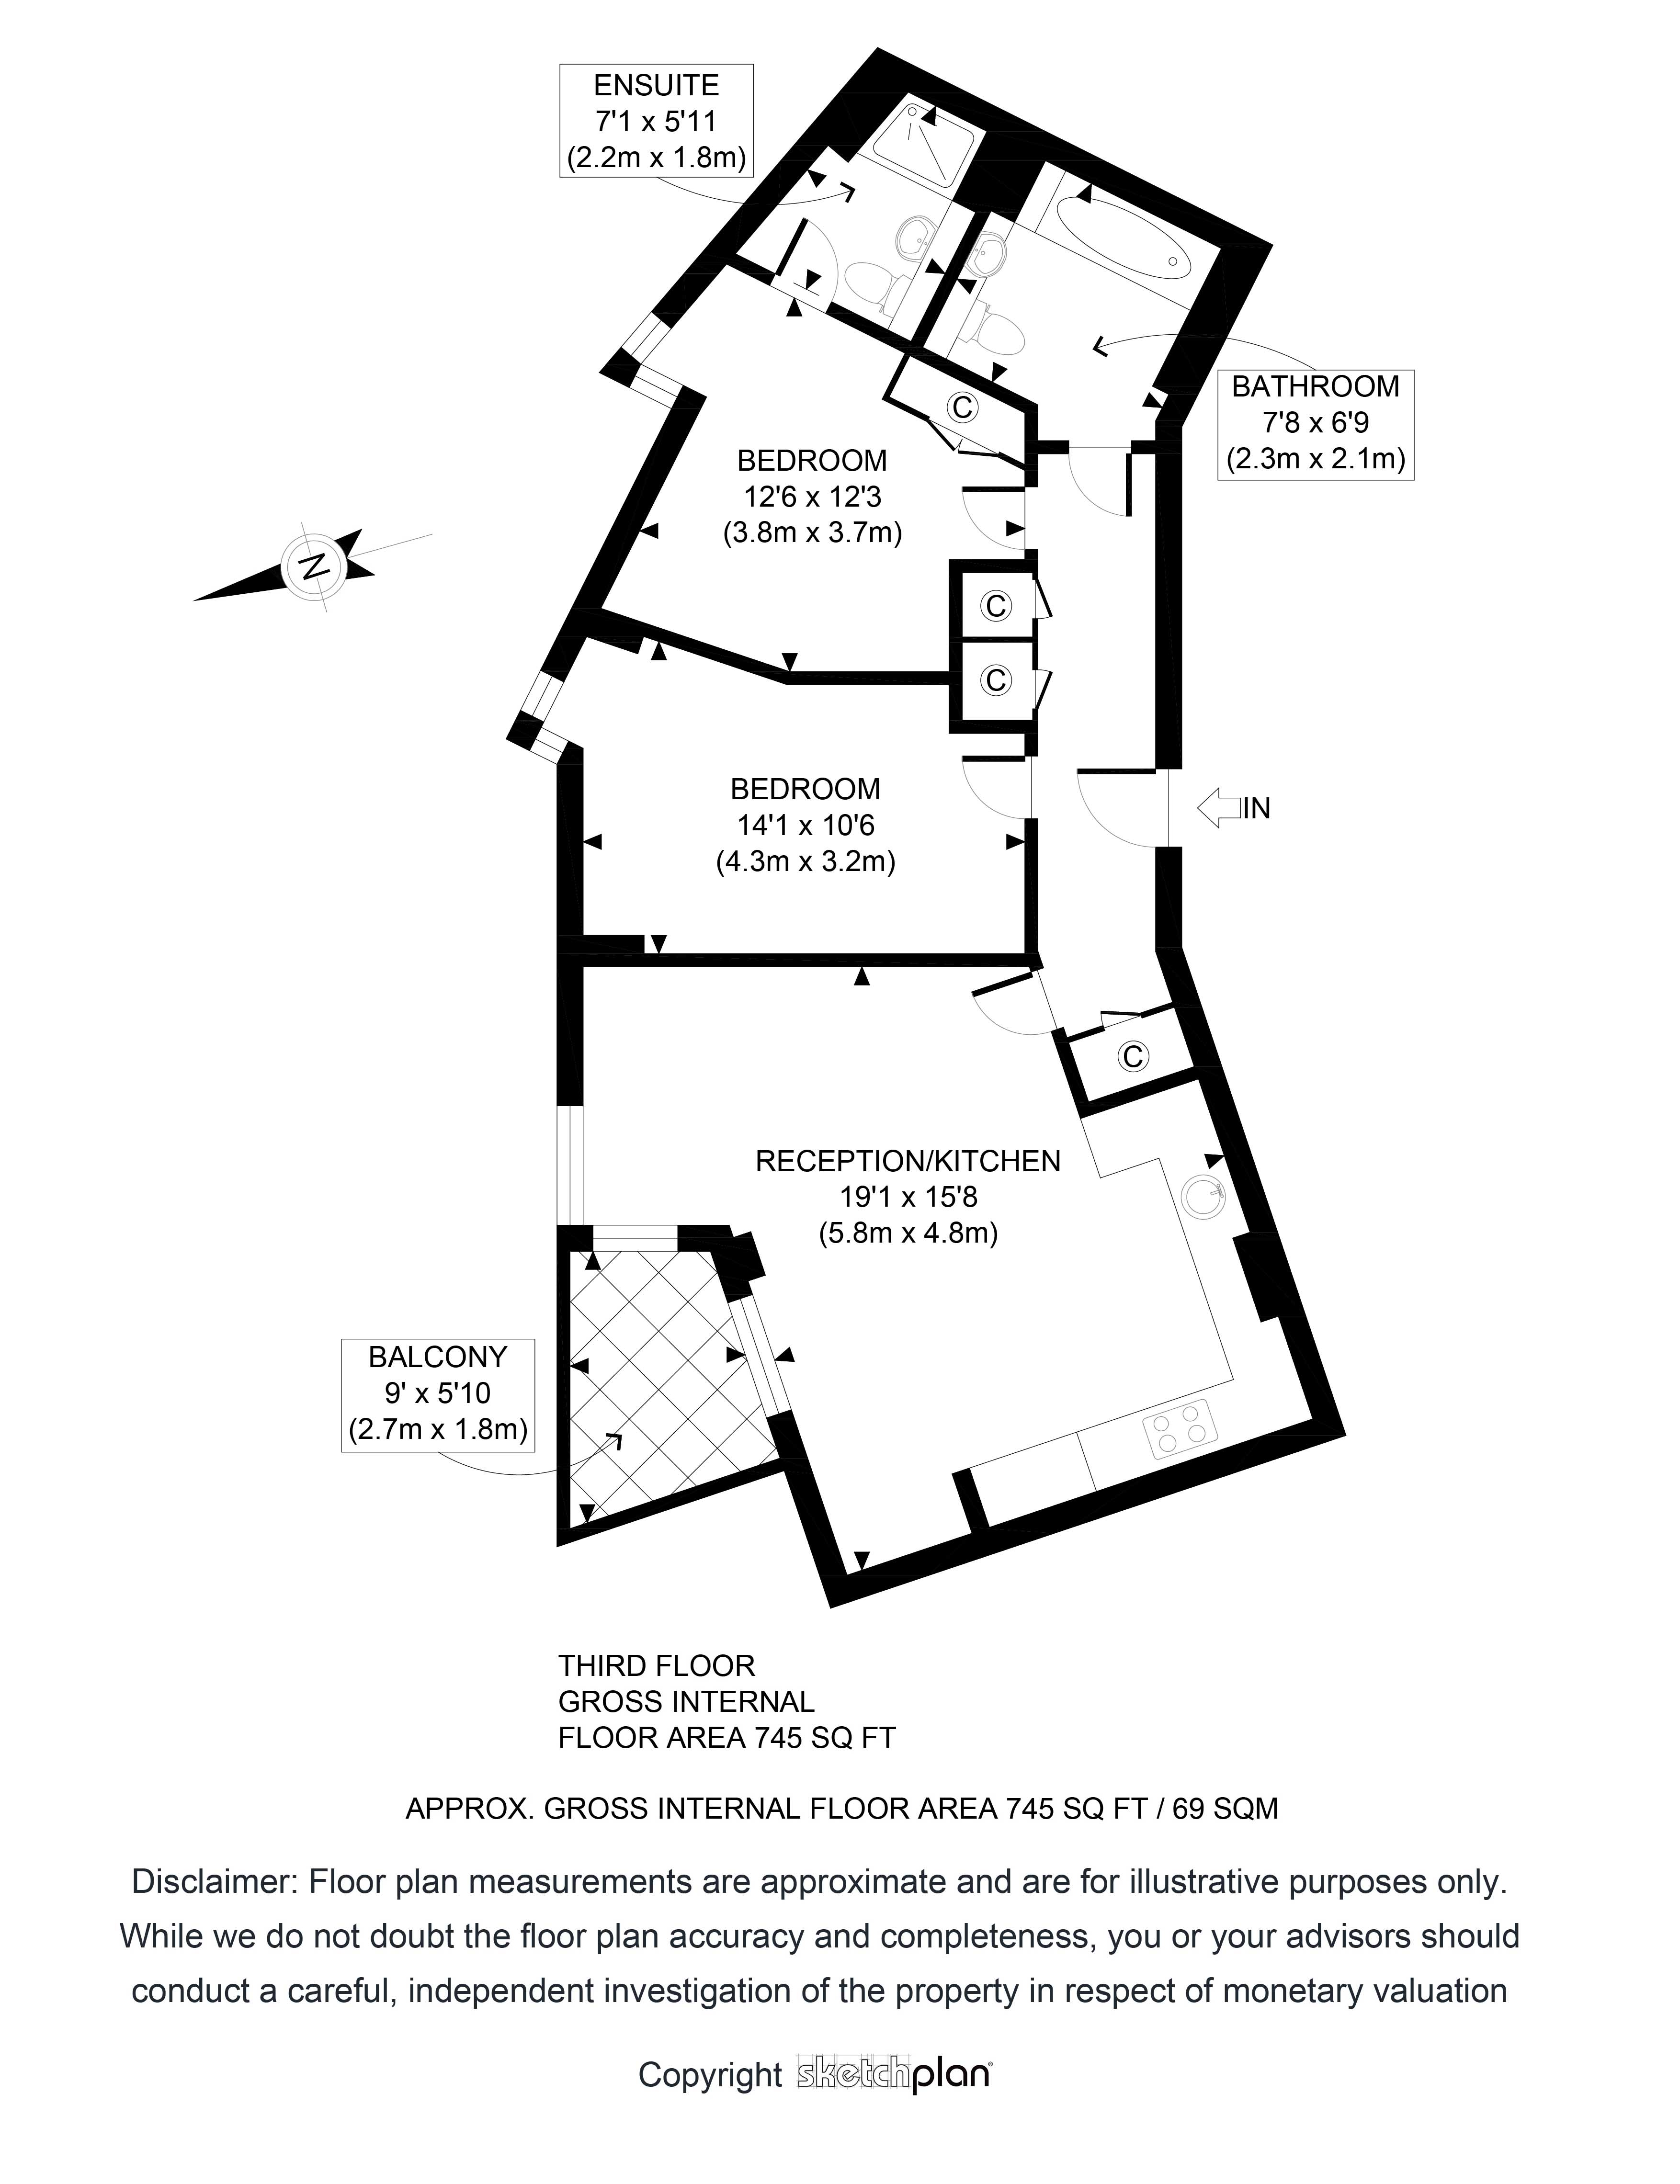 Examples Sketchplan Turning Sketches Into Beautiful Floor Plans Diagram Showing An Example Of A Plan Which Can Be Printed Or Used In Any Digital Material We Offer 24 36 Hour Turnaround Click On The Images Below To Enlarge